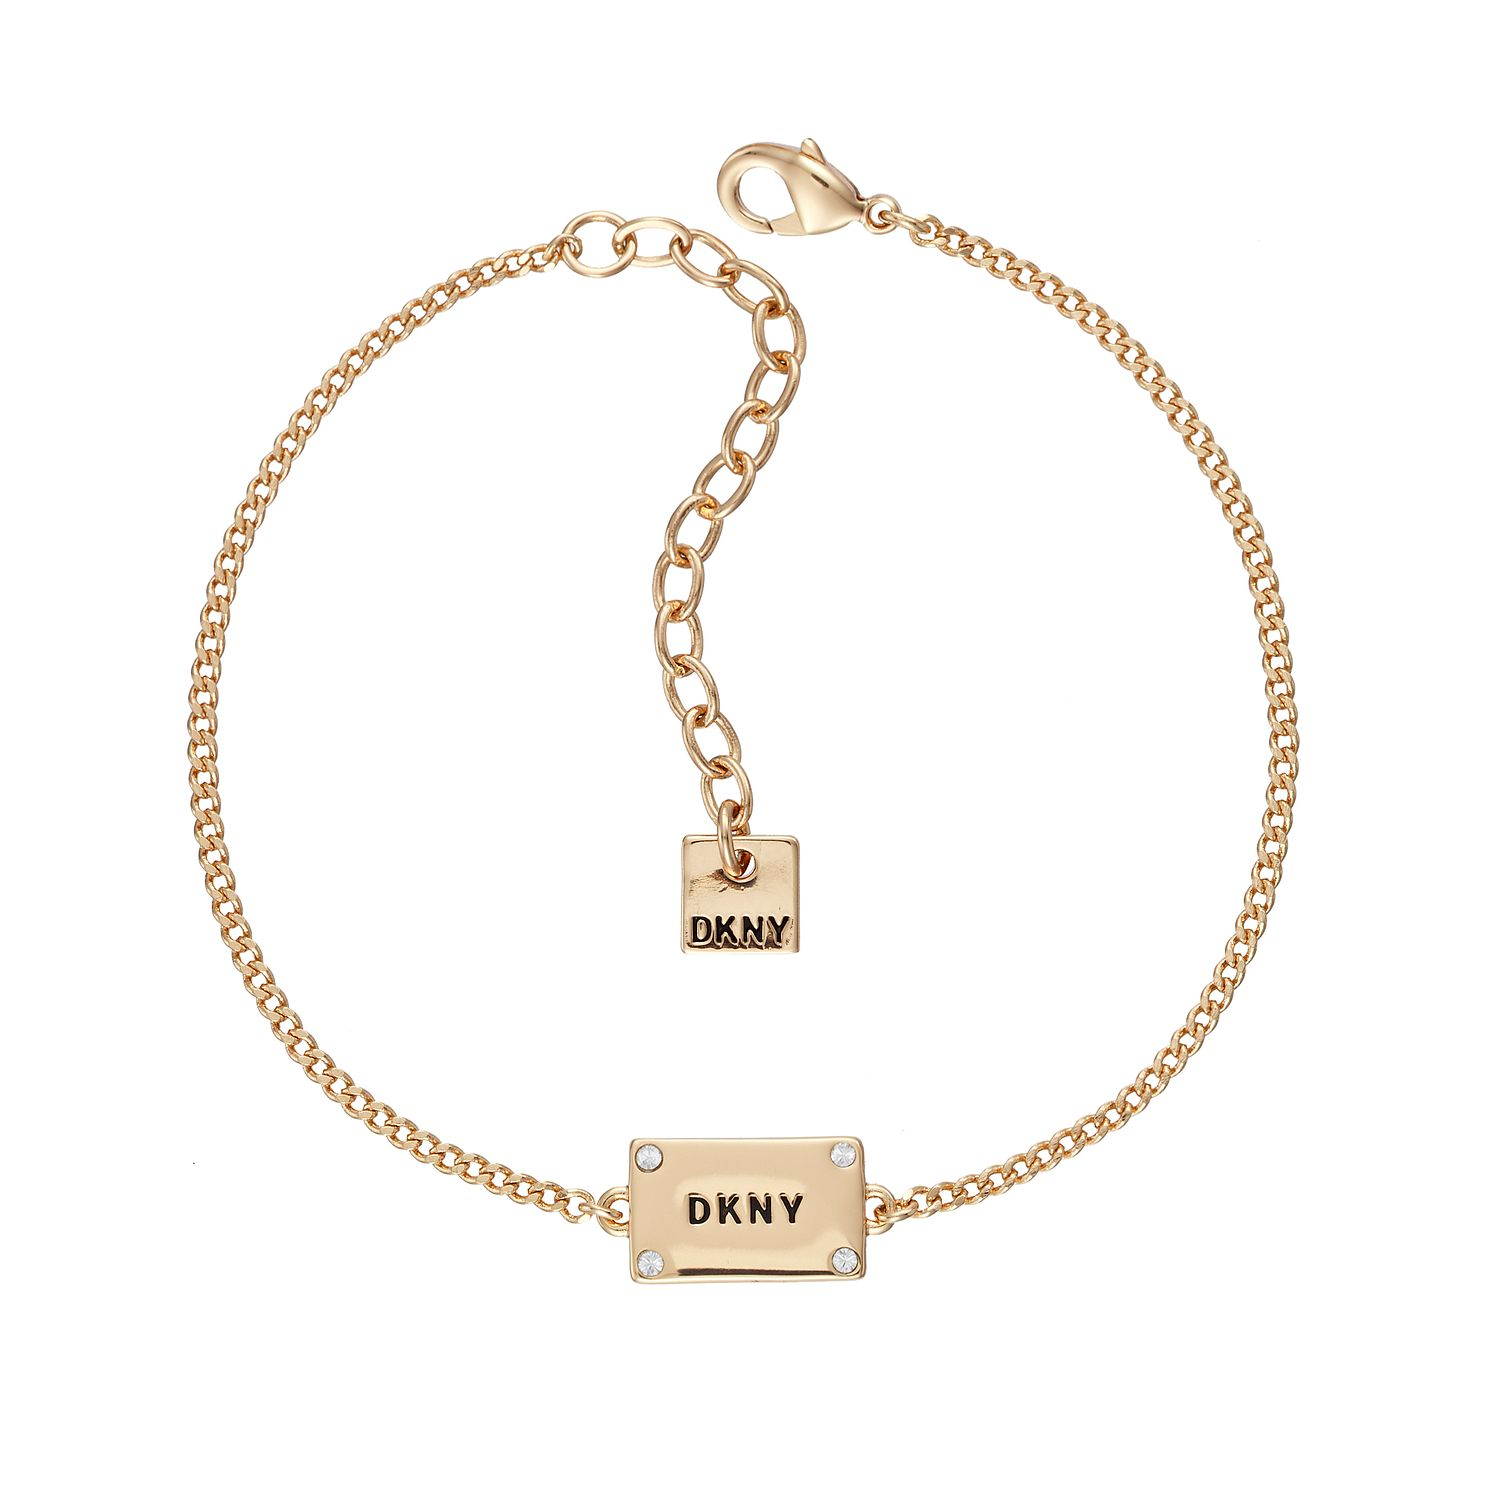 DKNY Logo Plackard Yellow Gold Plated Crystal Bracelet - Product number 5888611